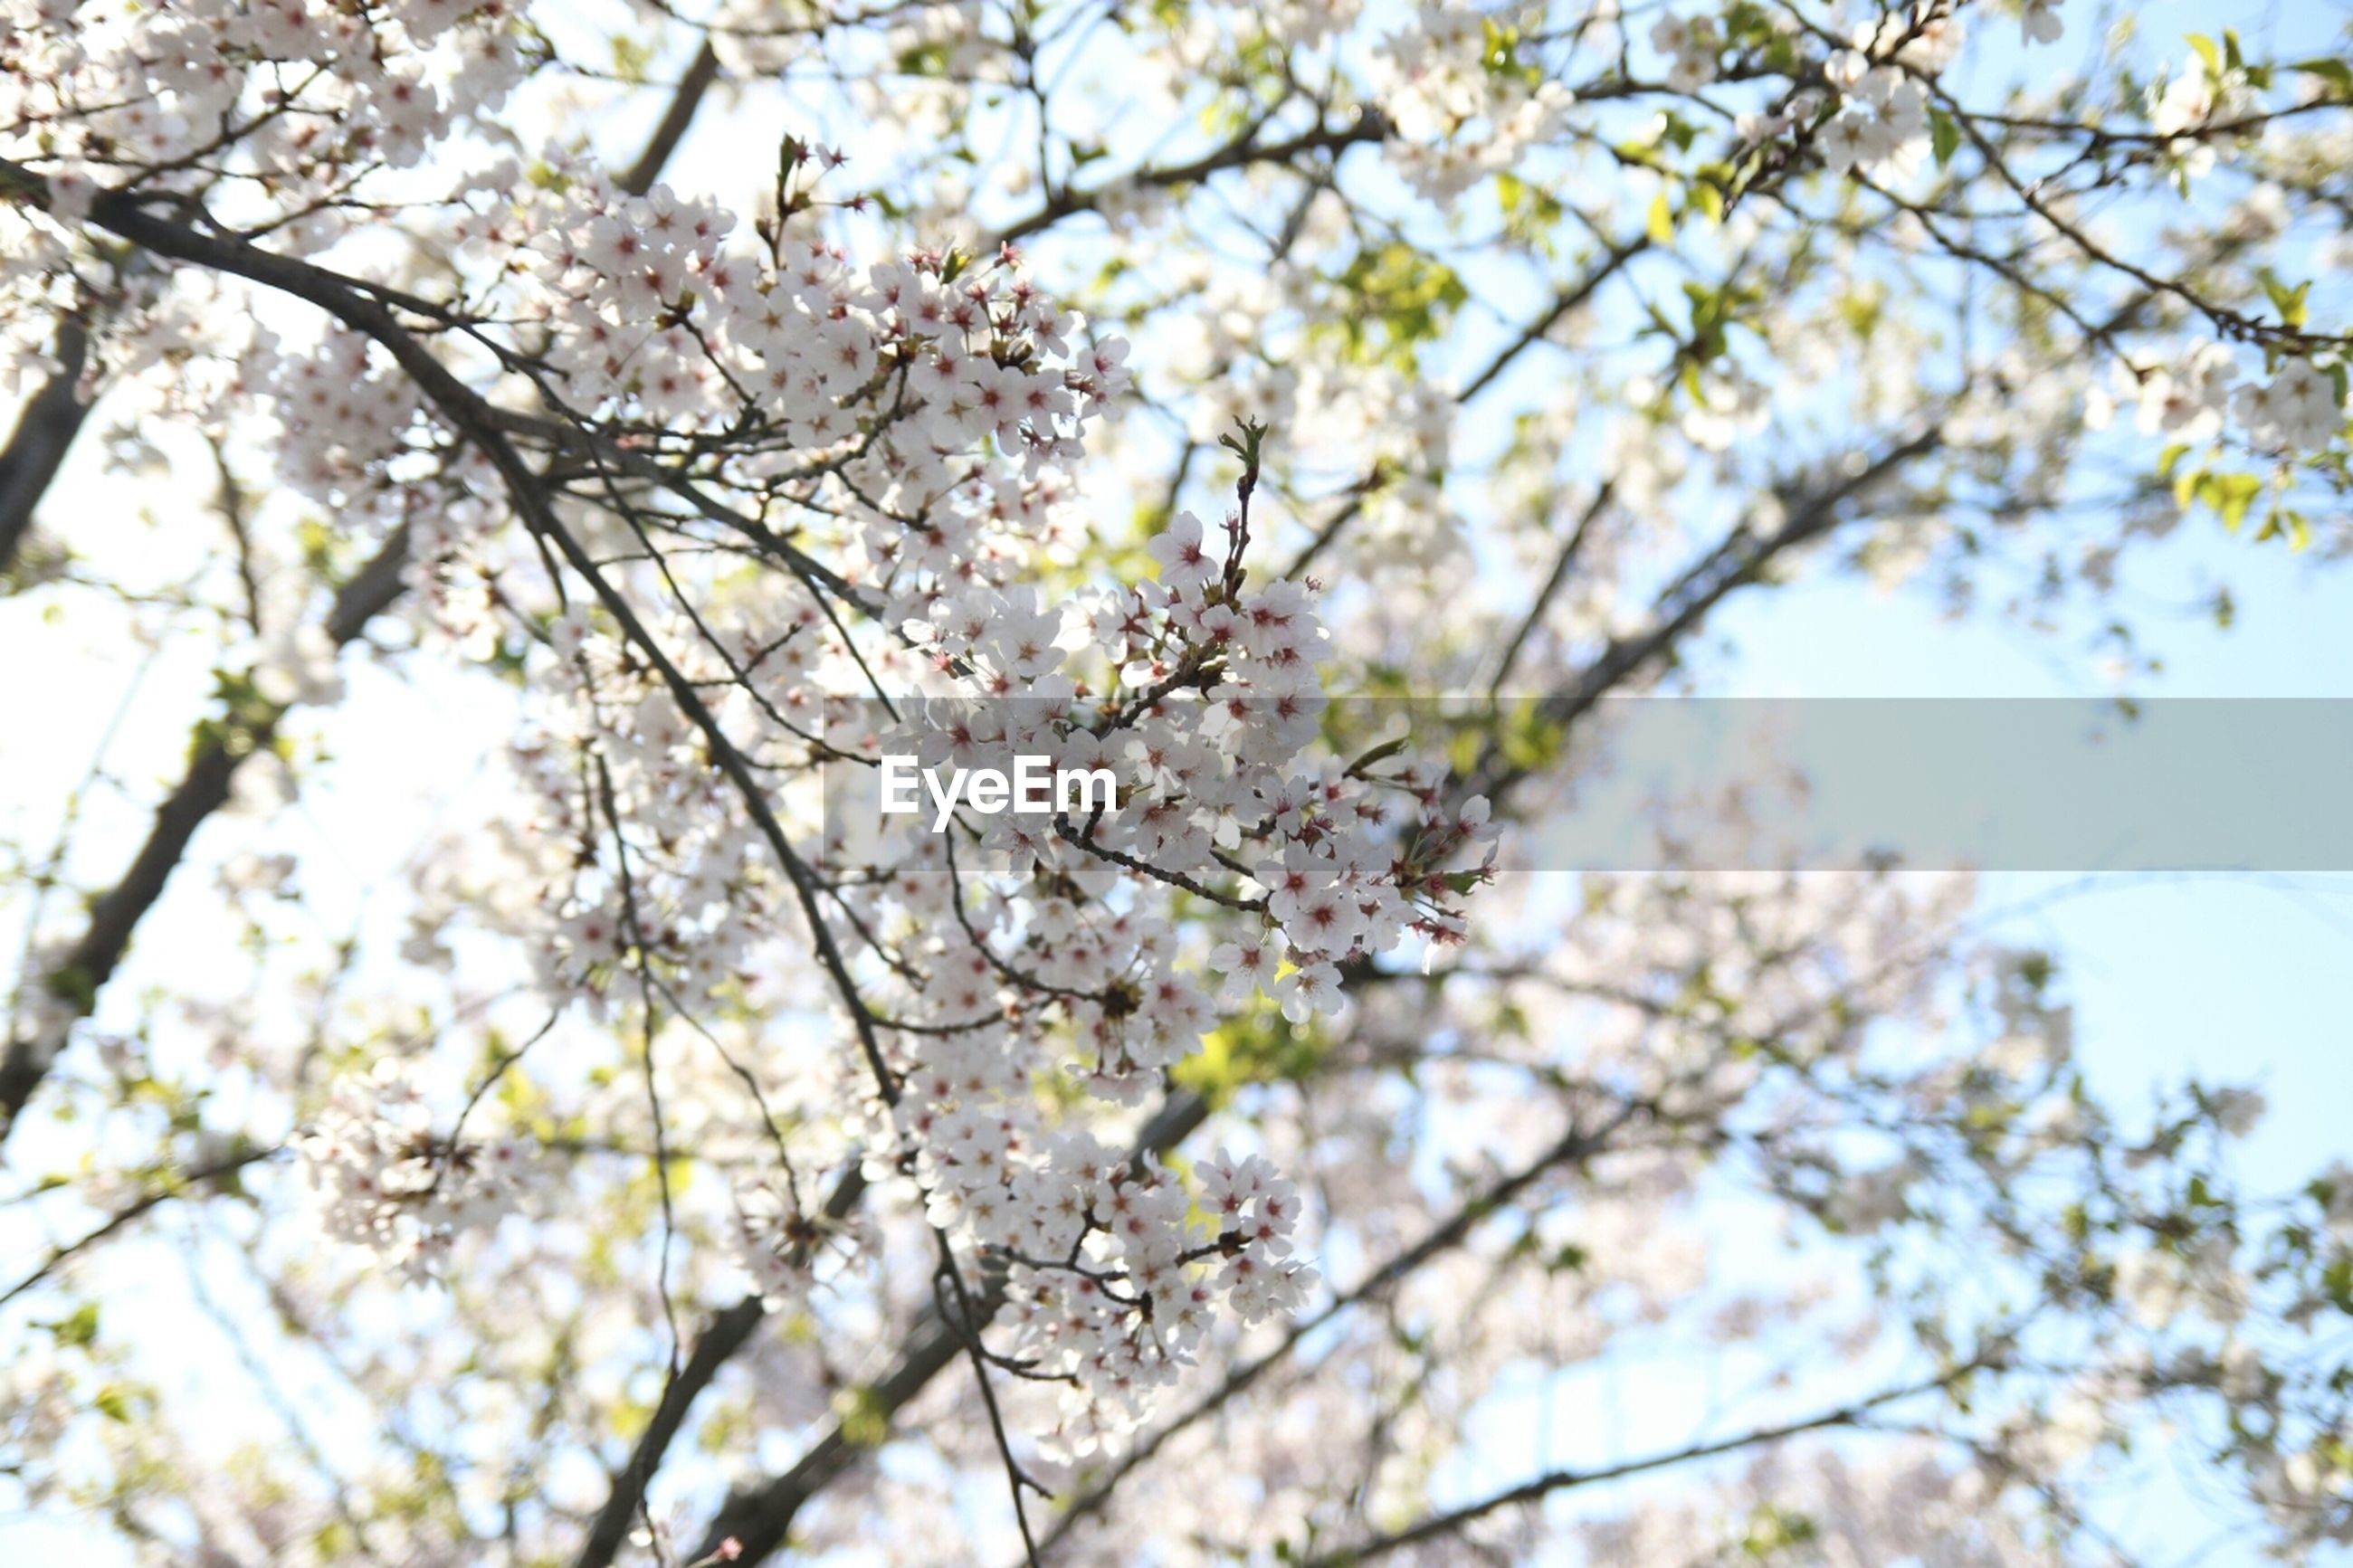 flower, branch, tree, freshness, low angle view, growth, beauty in nature, fragility, cherry blossom, blossom, nature, cherry tree, springtime, twig, in bloom, focus on foreground, blooming, close-up, petal, clear sky